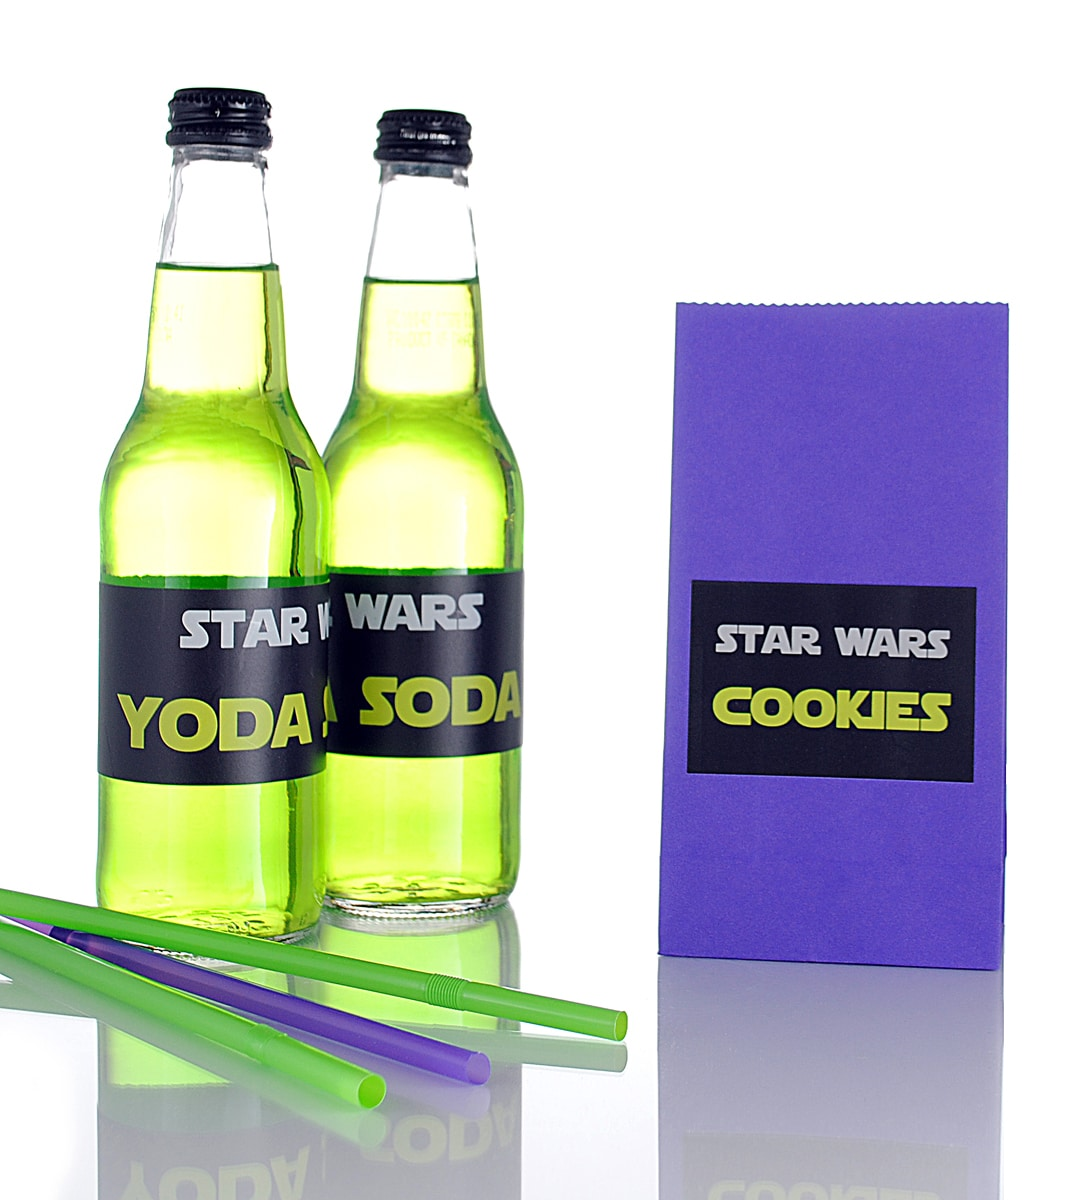 Star Wars Wedding Gifts: 11 Wedding Favors That Will Add Some Geekiness To Your